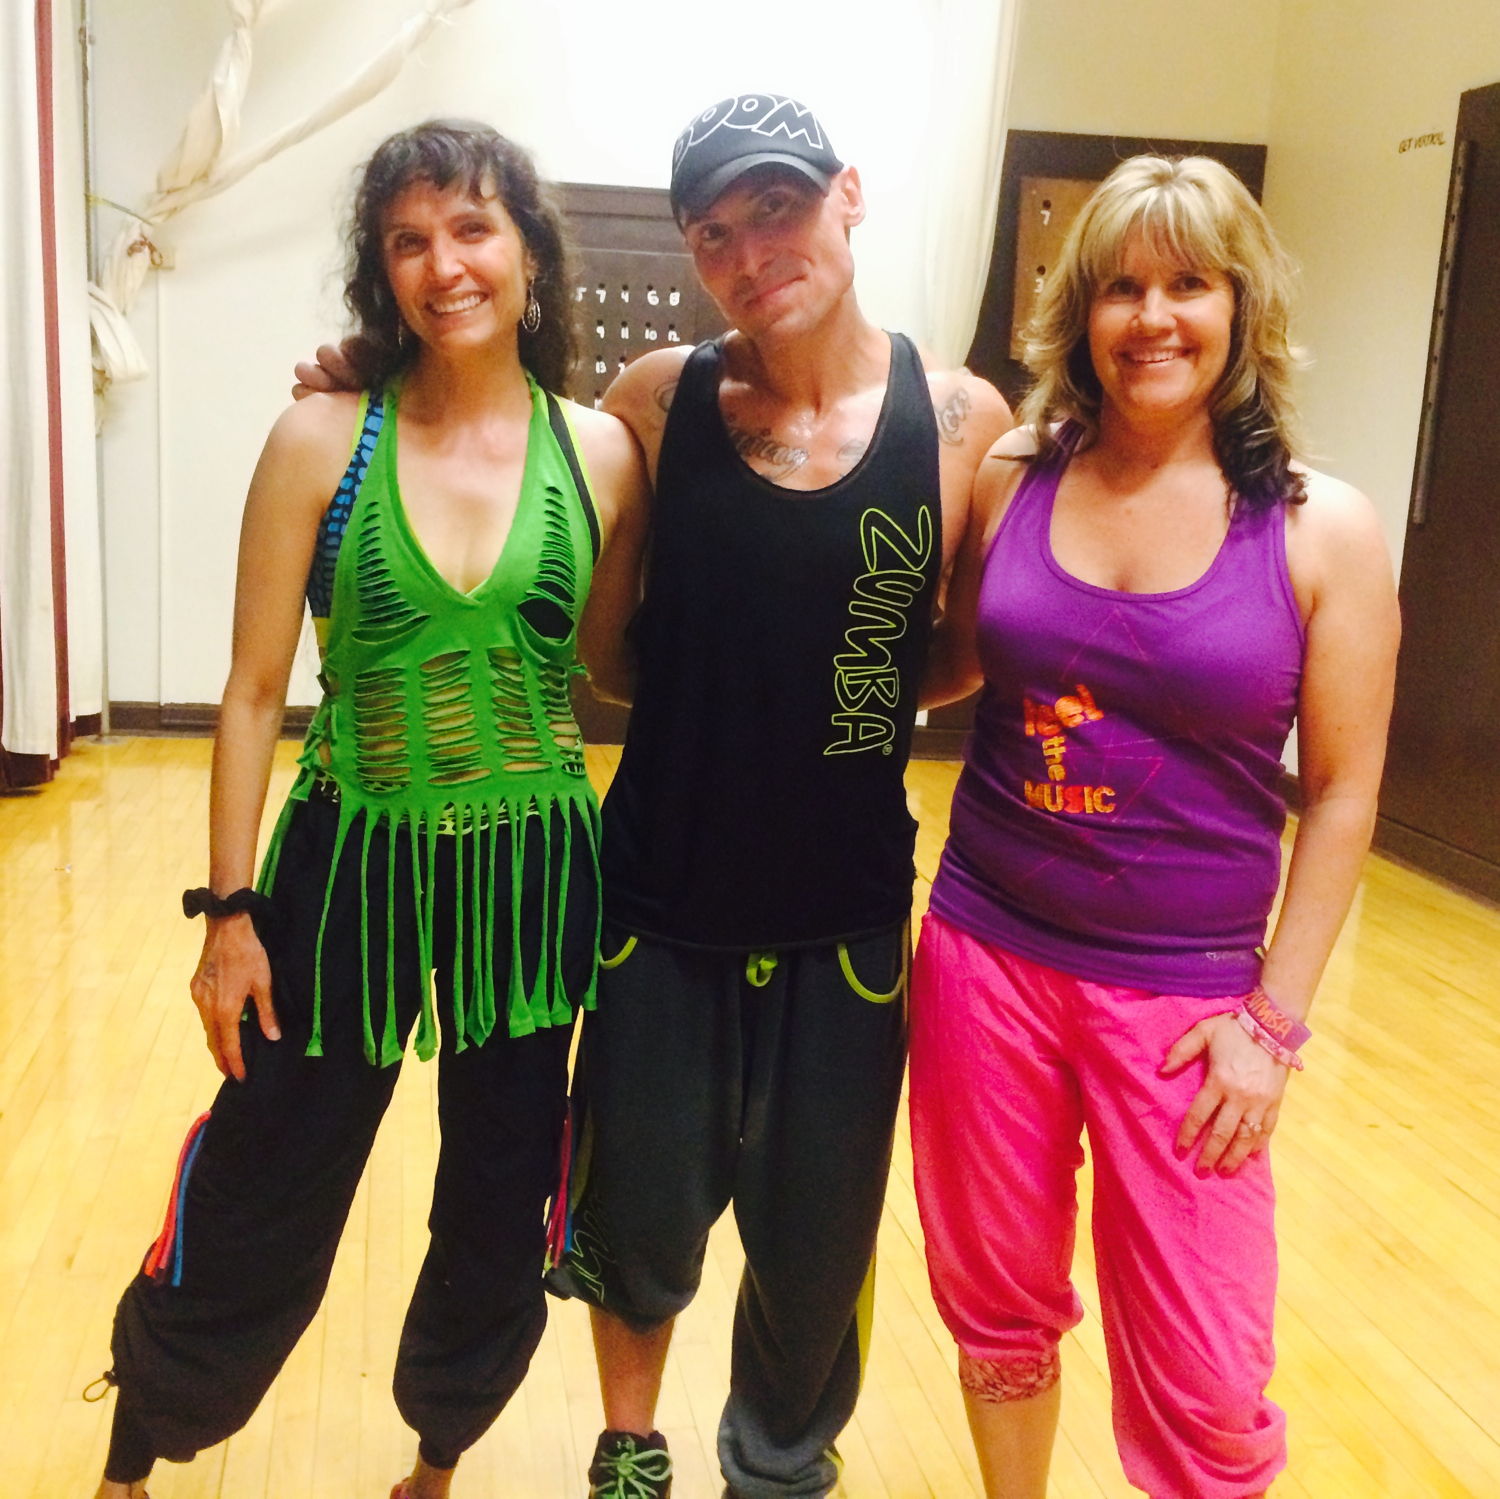 Gina with Zumba Royalty Acea Theroux Zes and Nancy Mehring